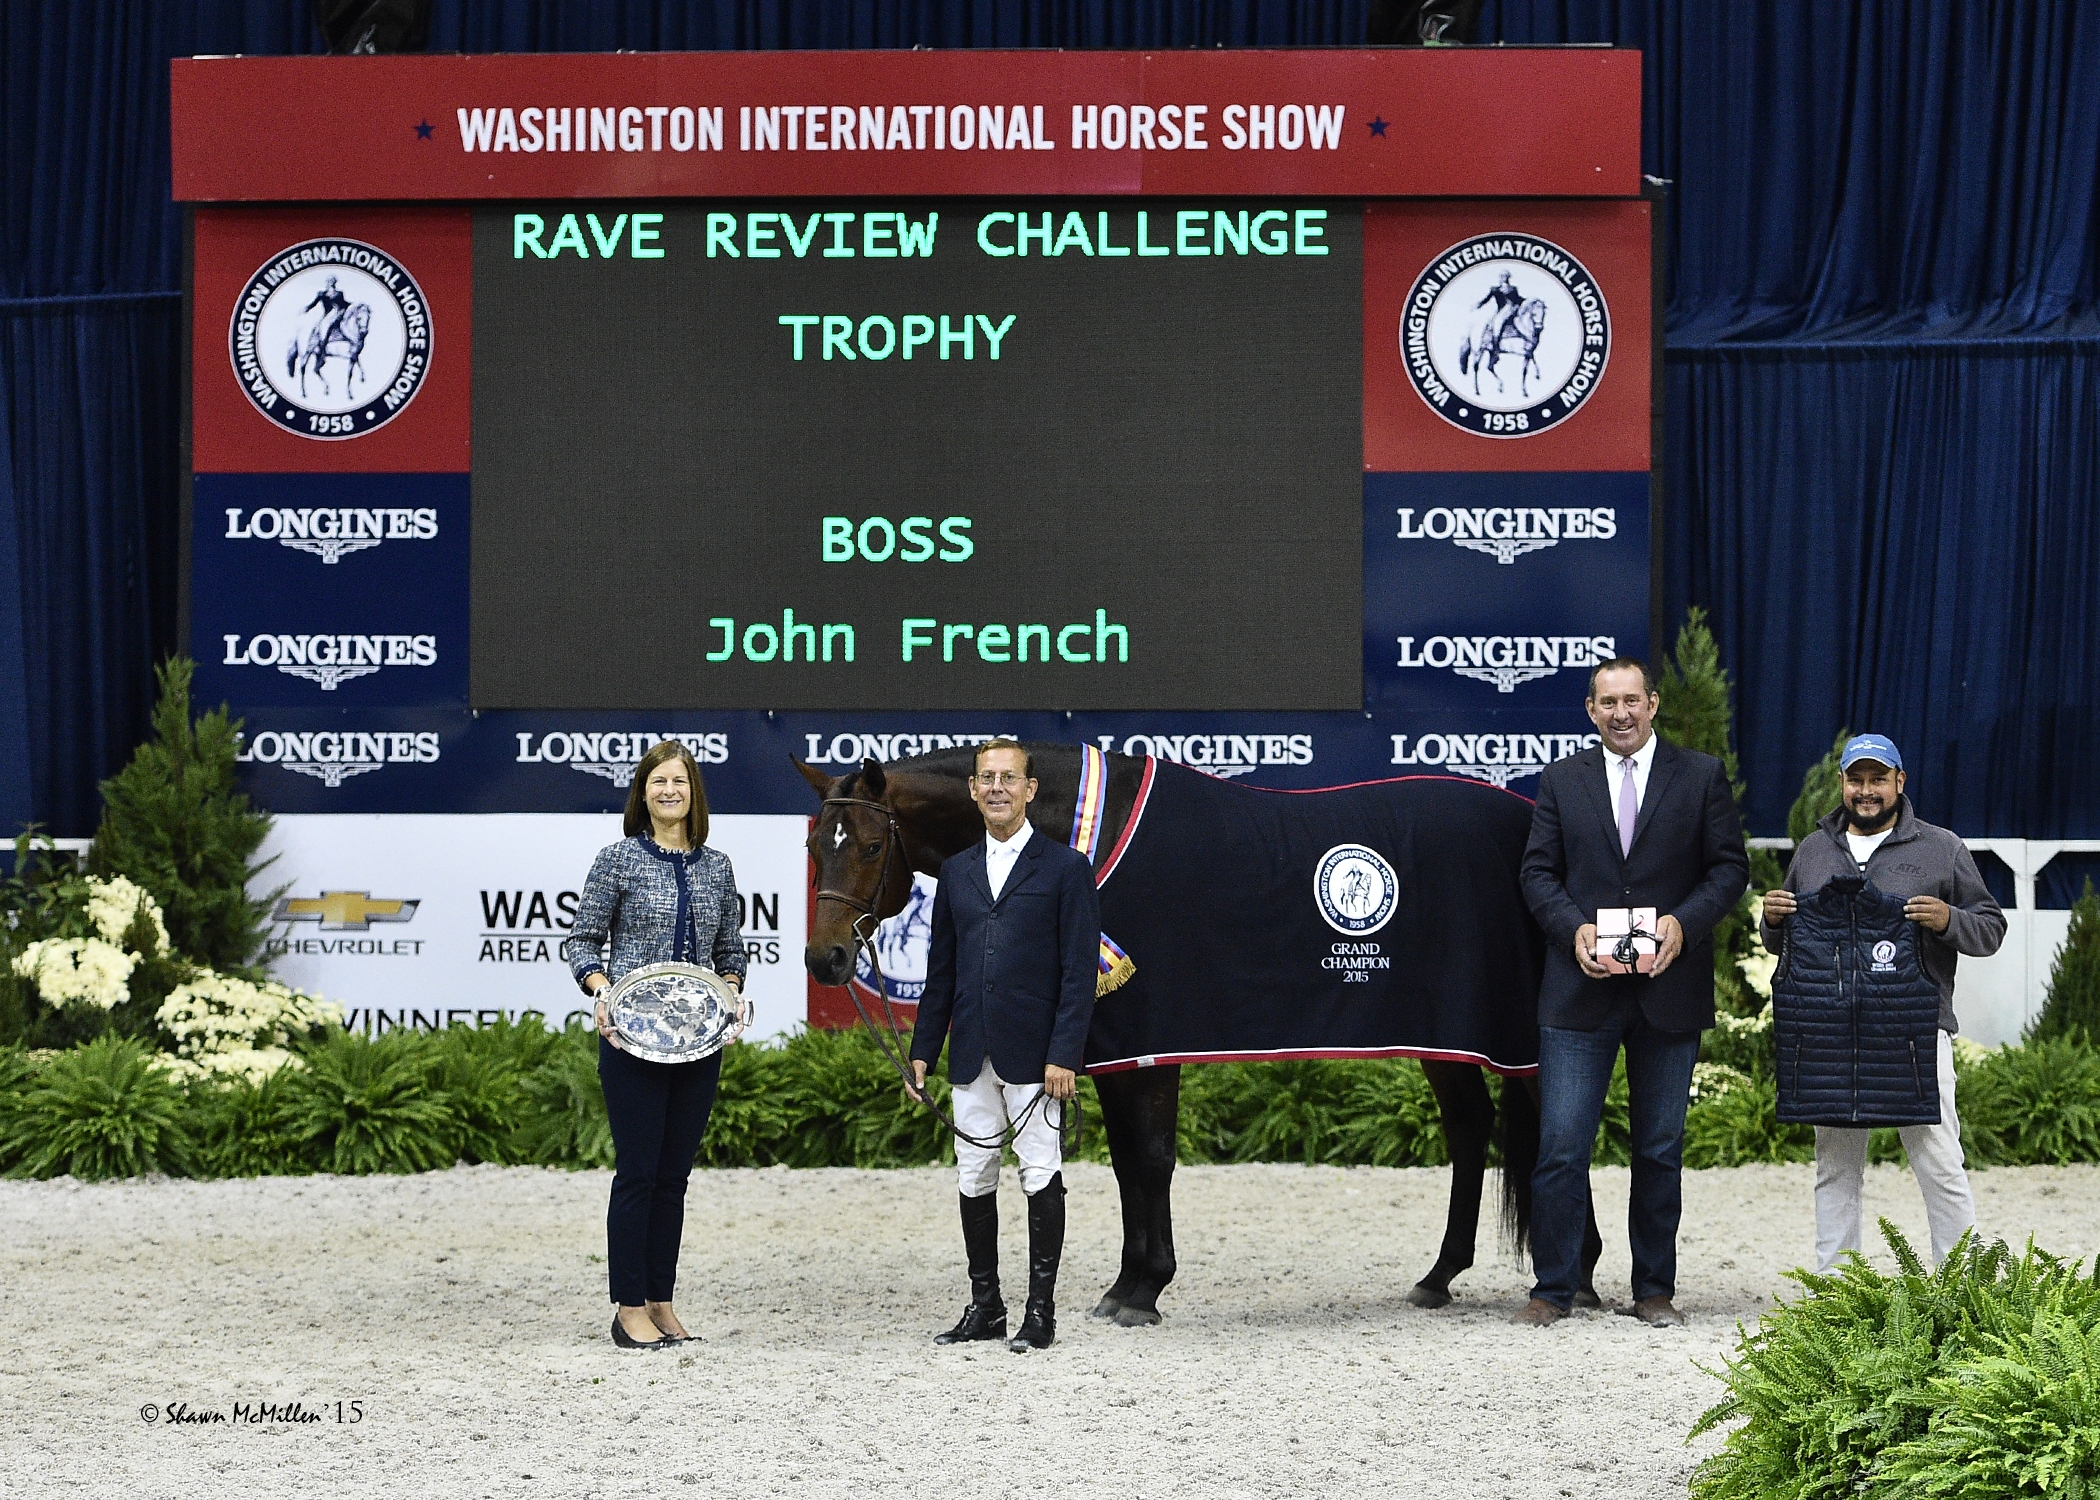 John French and Boss in their presentation for Grand Champion Hunter with WIHS Executive Director Bridget Love Meehan, Archie Cox, and groom Alex Garcia. <br><b>Photo by <a href='http://www.shawnmcmillen.com/' target='_blank'>Shawn McMillen Photography</a></b>